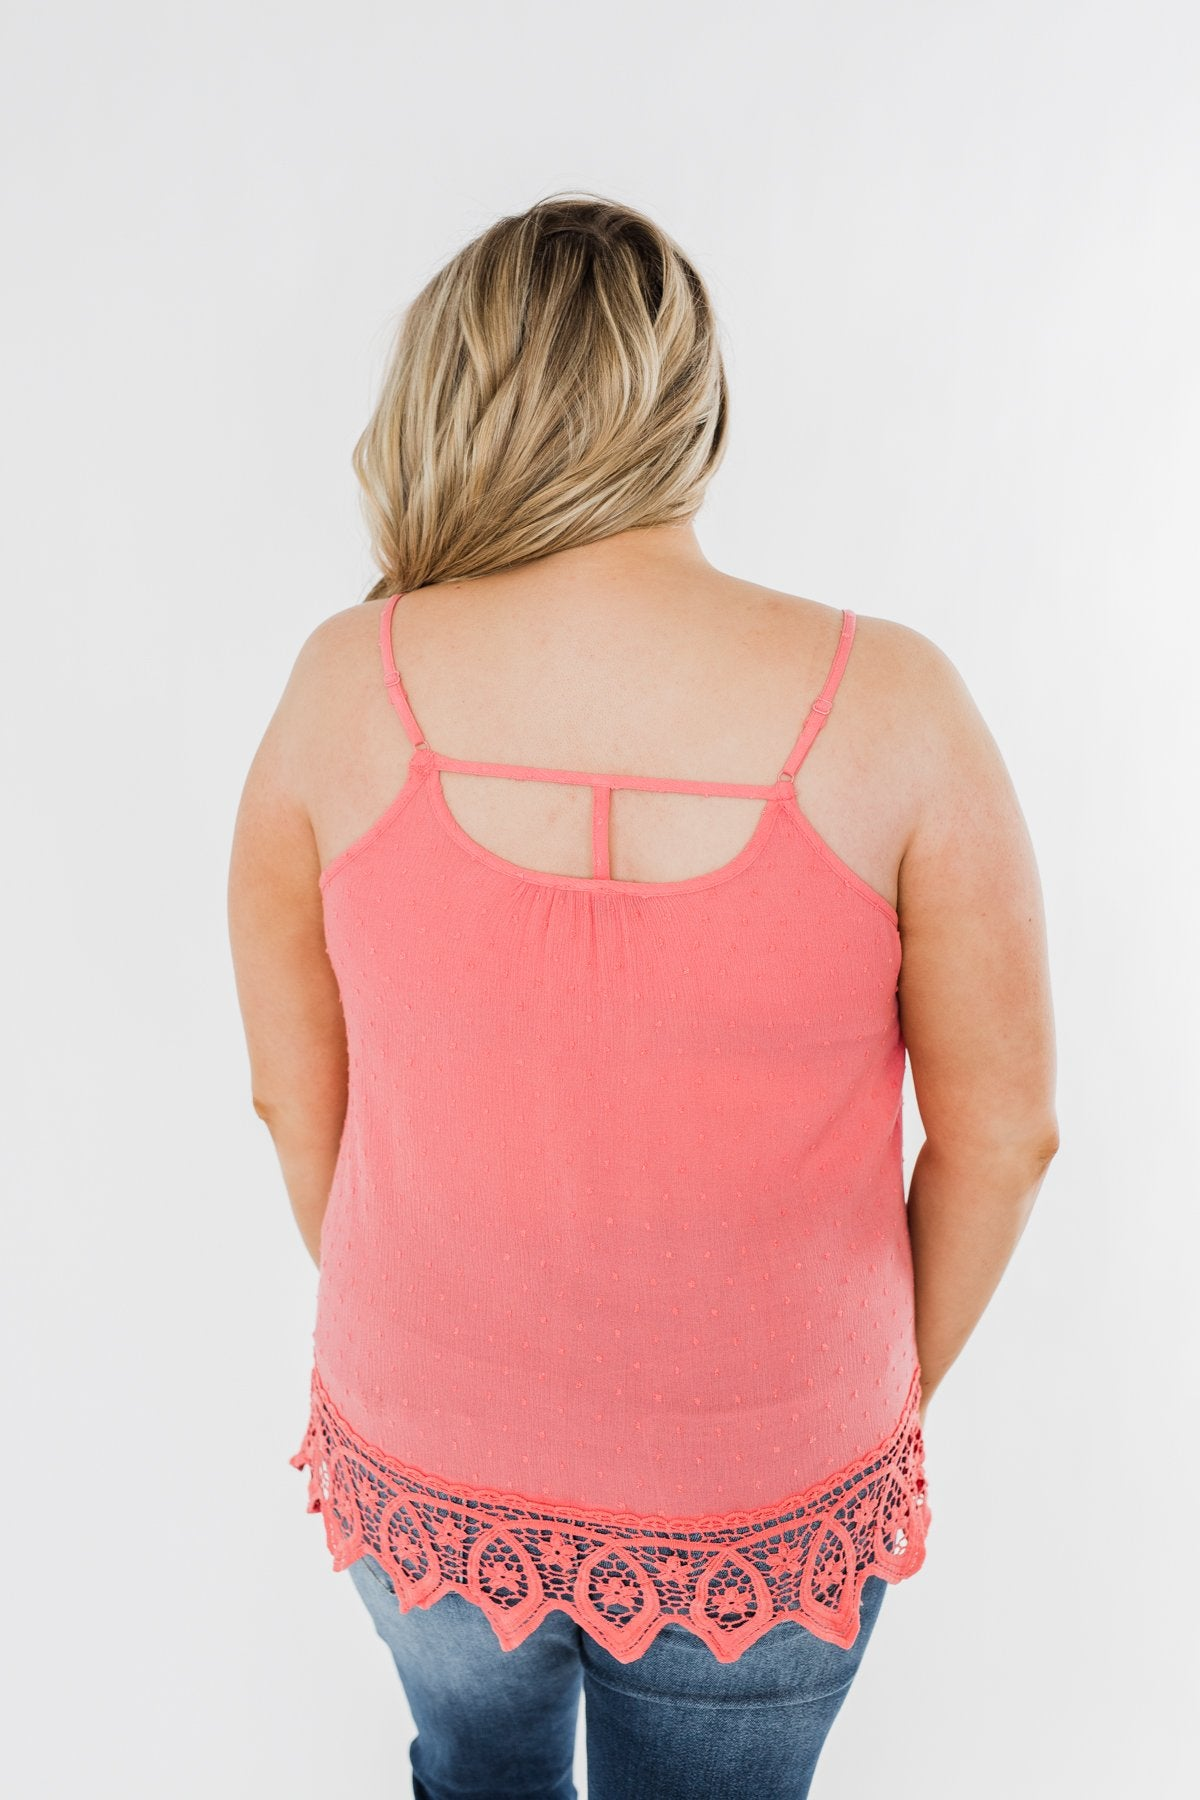 Calling My Name Crochet Tank Top- Coral